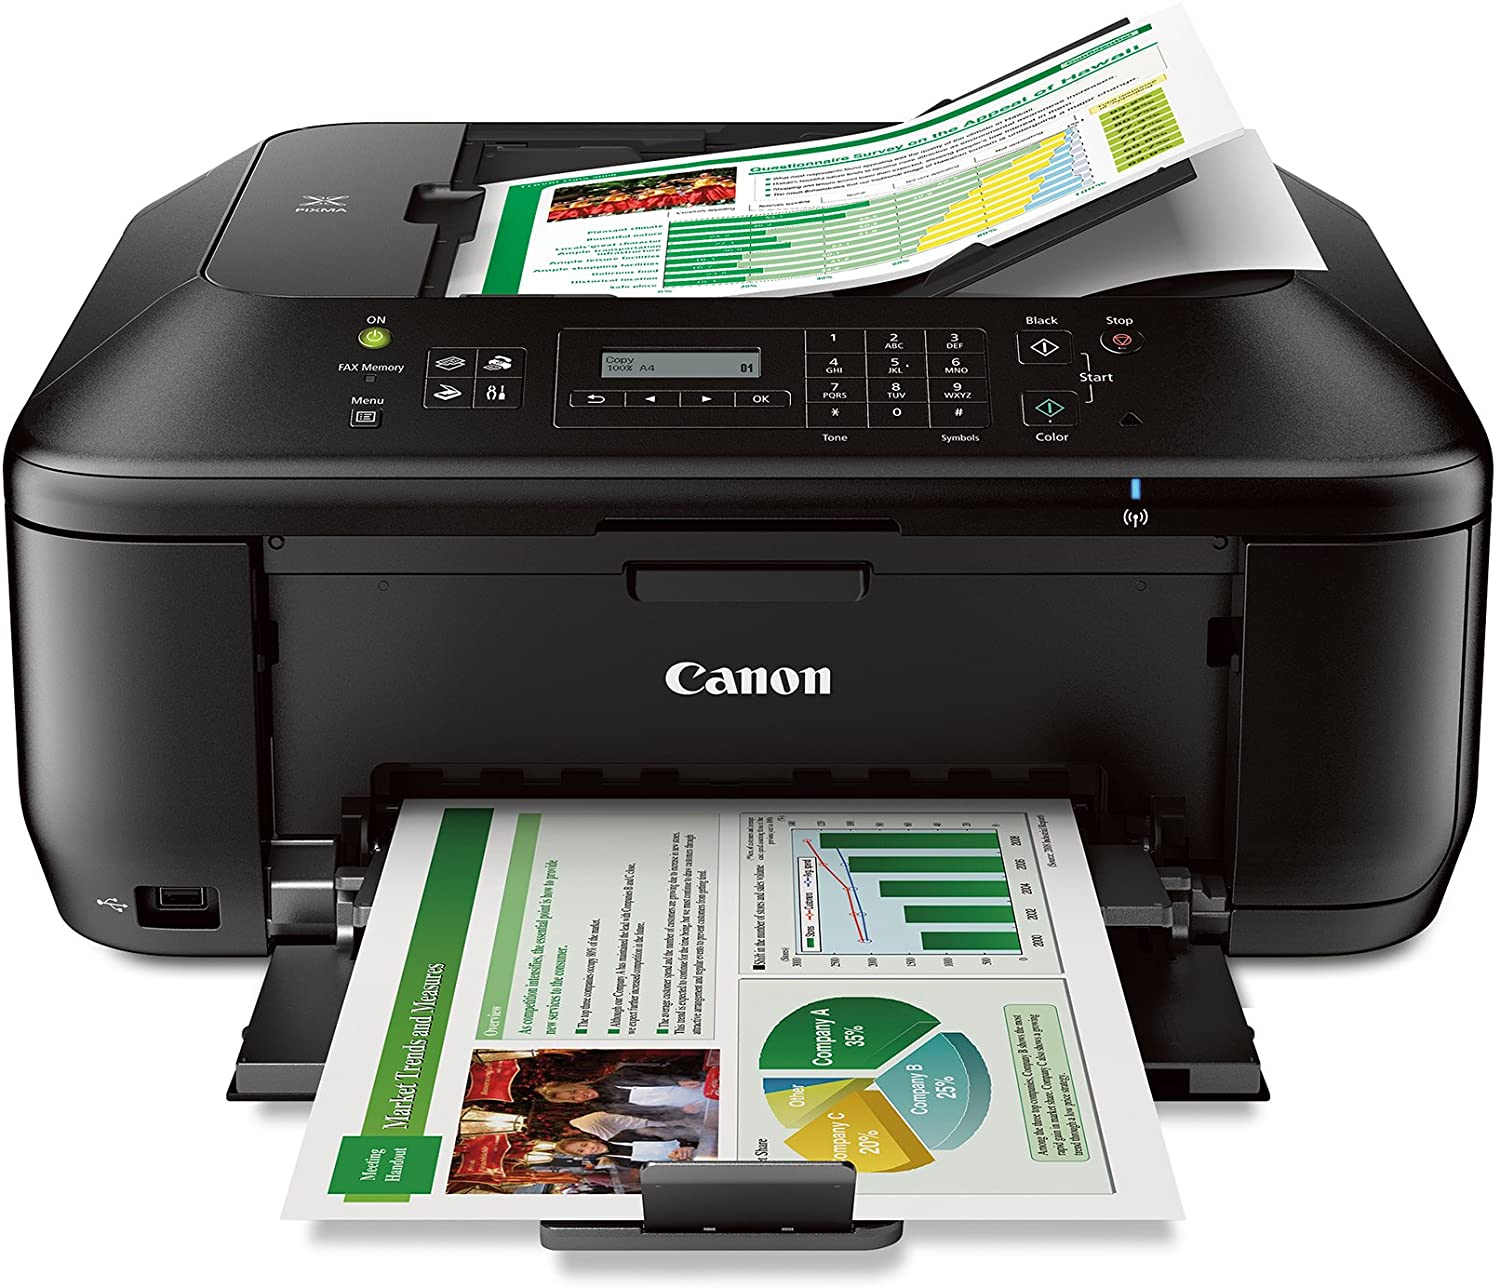 Canon Wireless Printer CNMMX532